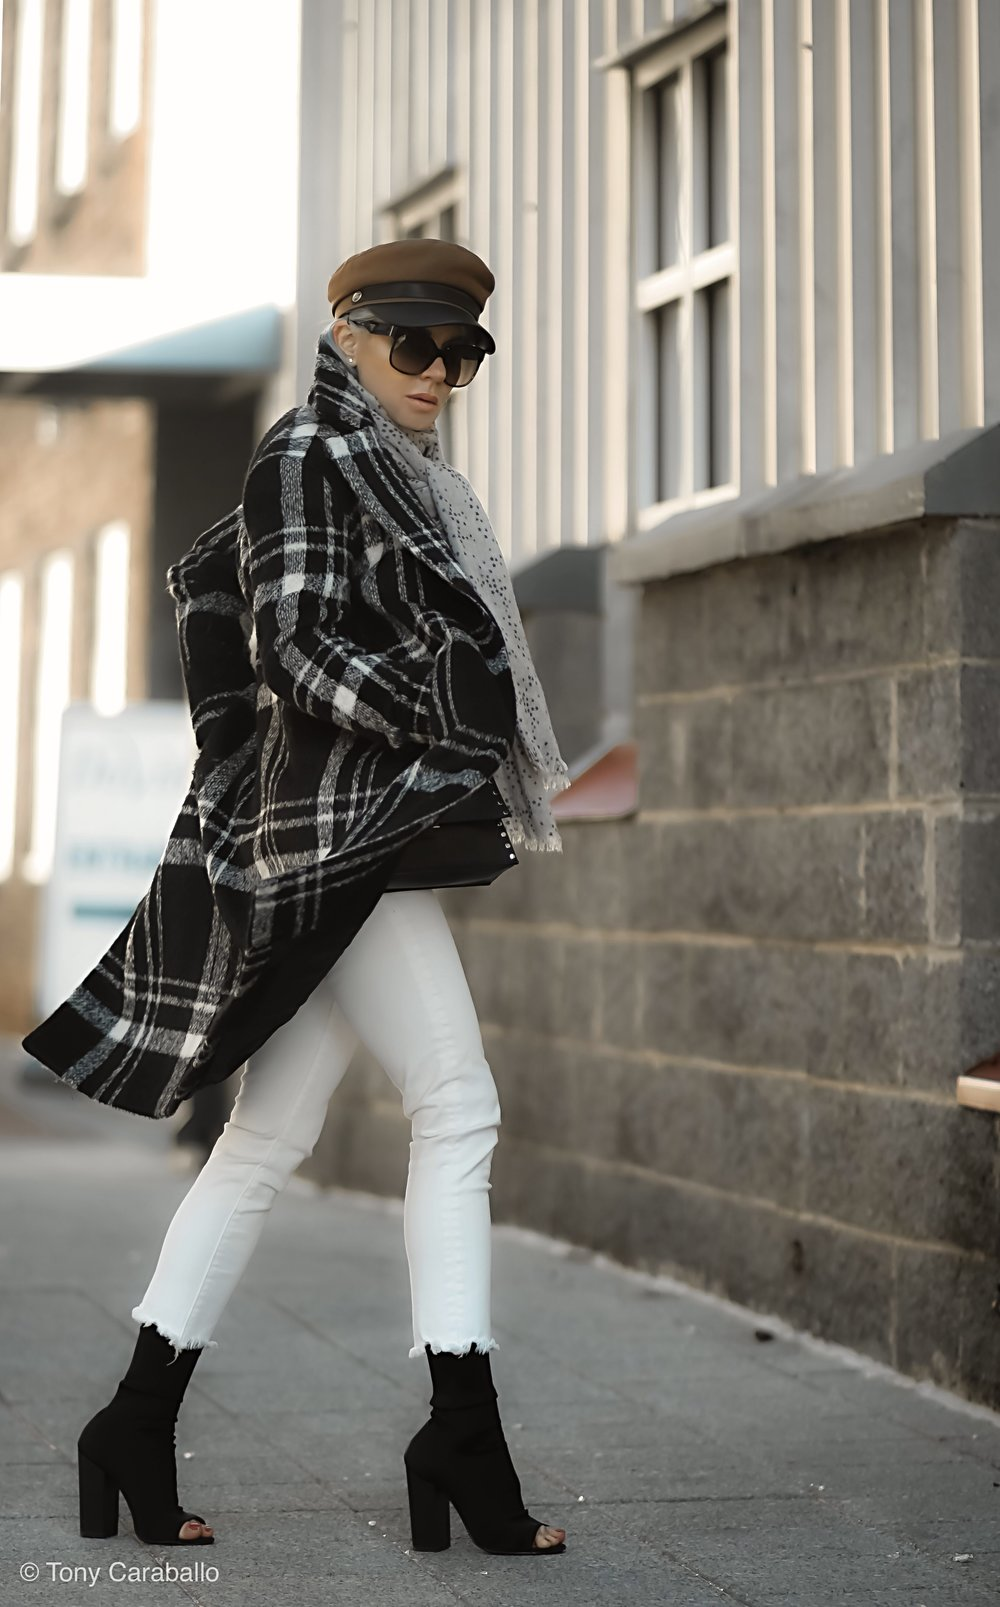 Isabel Alexander About US plaid coat profile